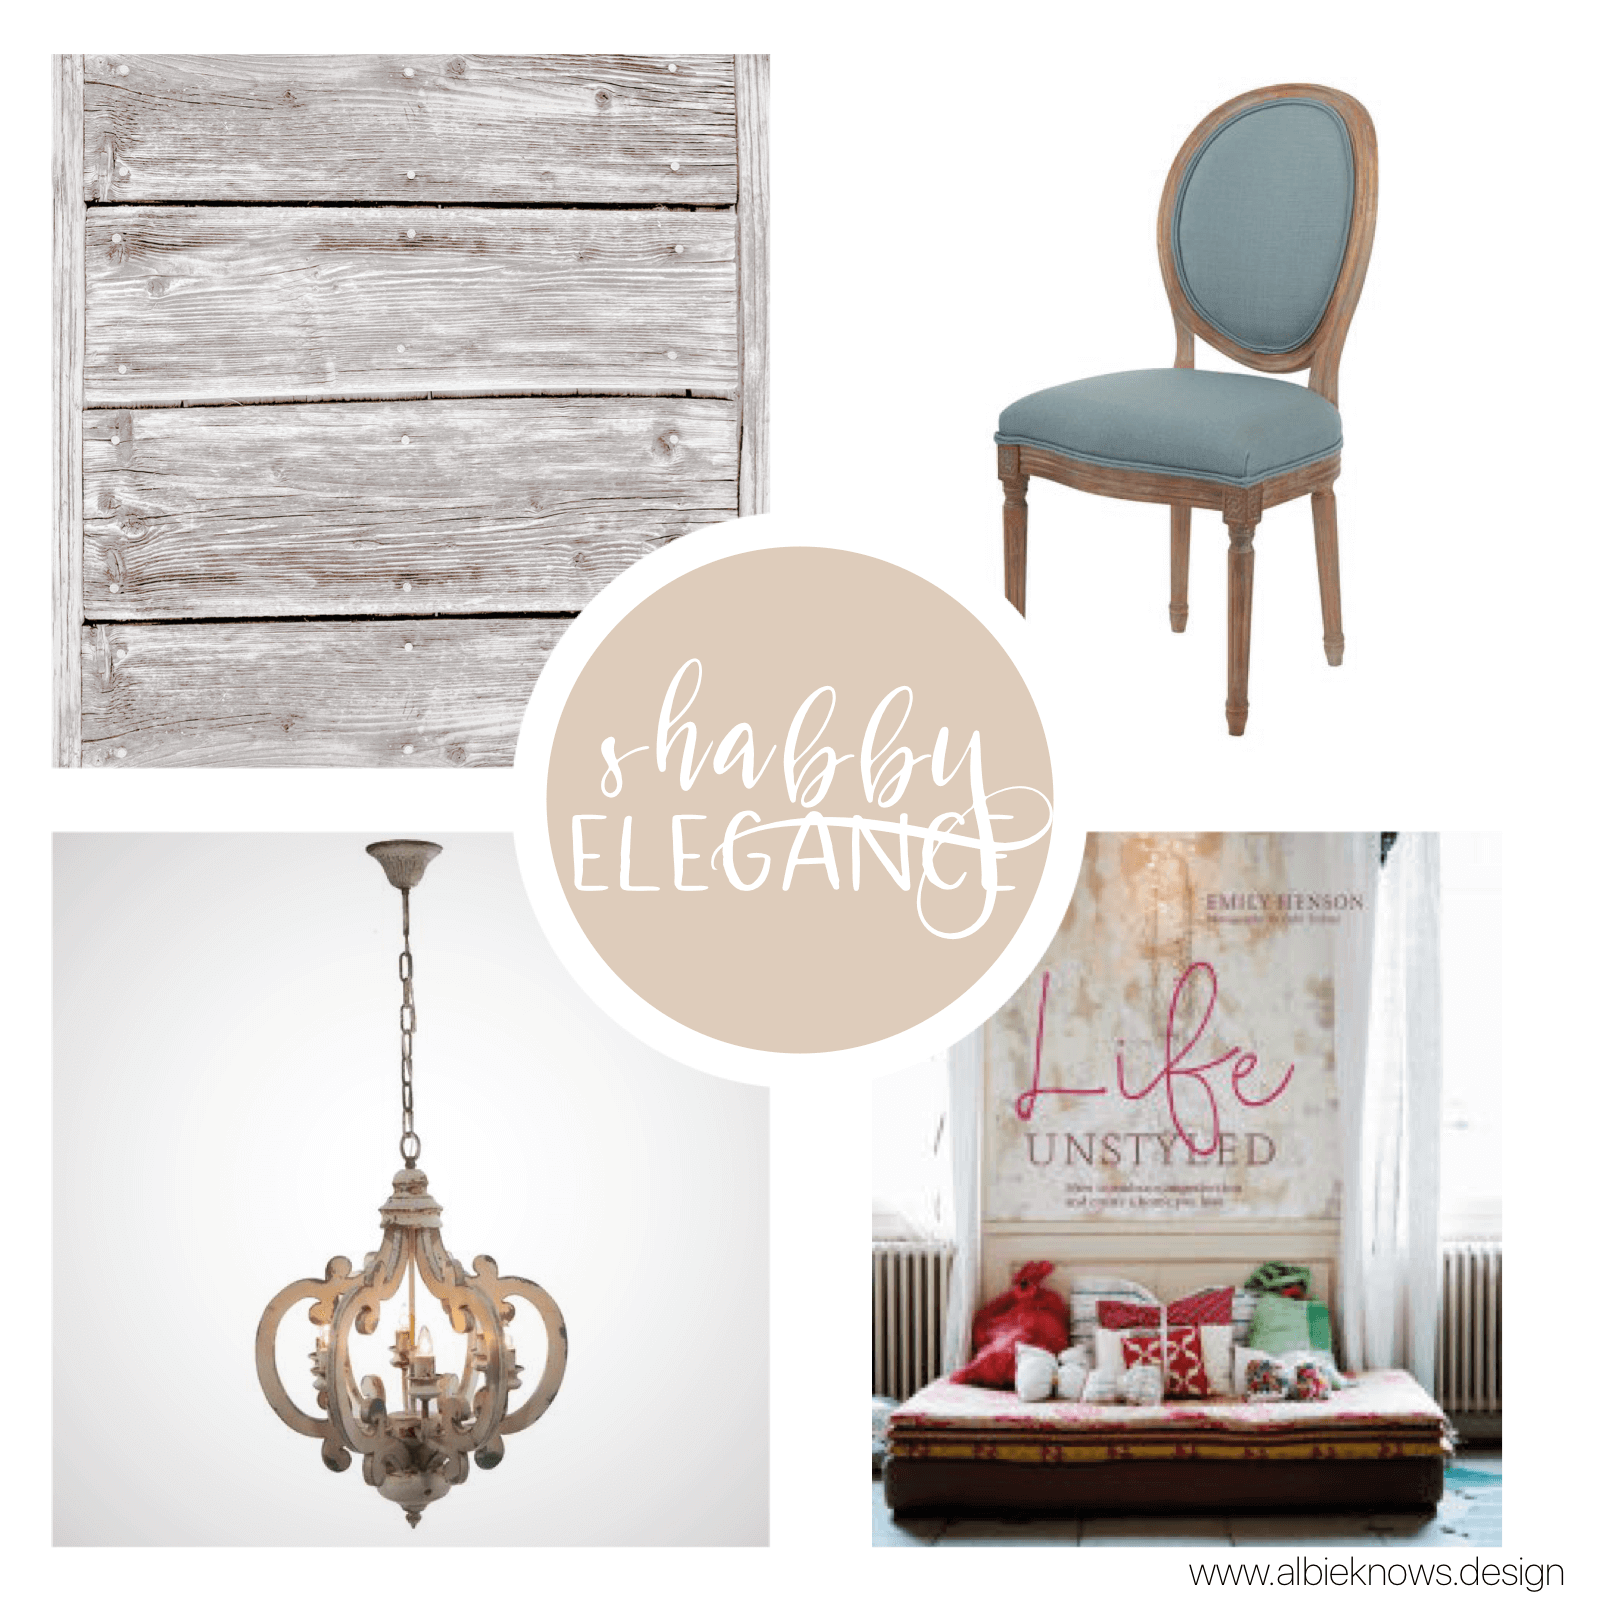 You appreciate a timeless, elegant, feminine look, that looks effortless, composed, and inviting. Shopping for your home means your salvaging beautiful vintage finds from flea markets & garage sales, and you're not afraid to do some whitewashing if you have to. You're budget conscious, which is perfect for your design style.    READ MORE